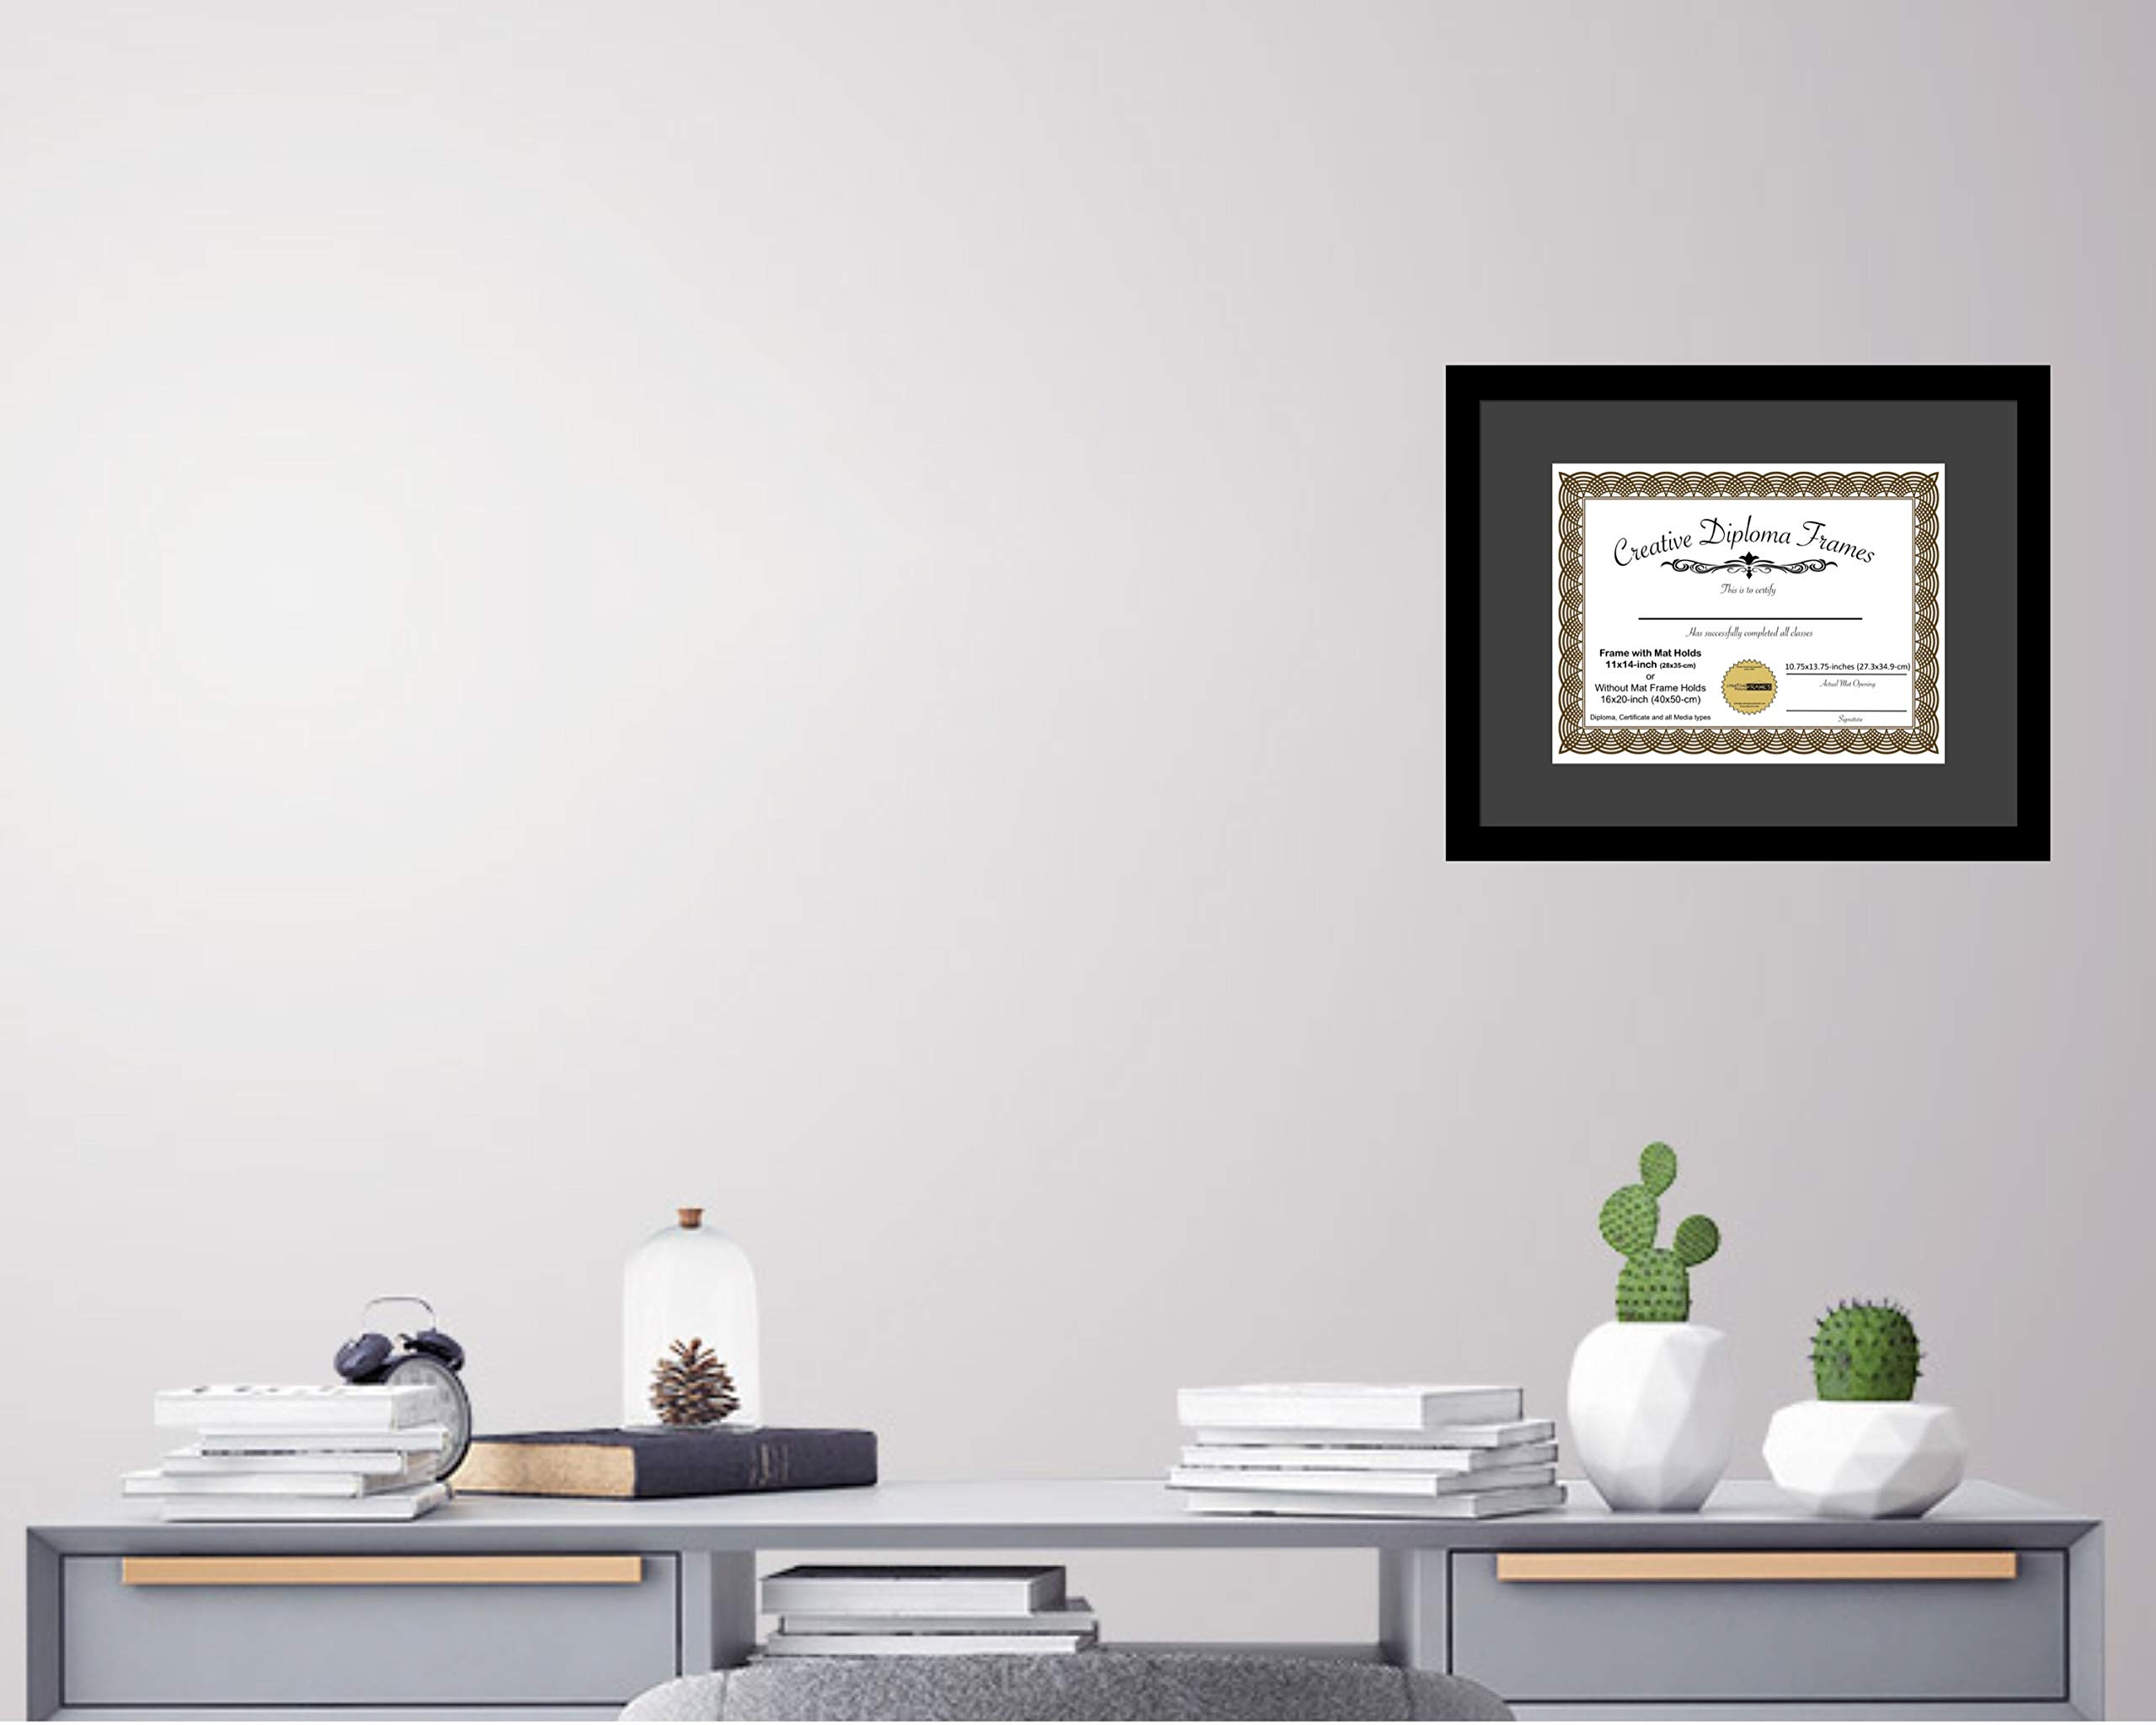 CreativePF [1620bk-b] Satin Black Large Diploma Frame with Black Mat Holds 14x17-inch Documents with Glass and Installed Wall Hanger by Creative Picture Frames (Image #5)